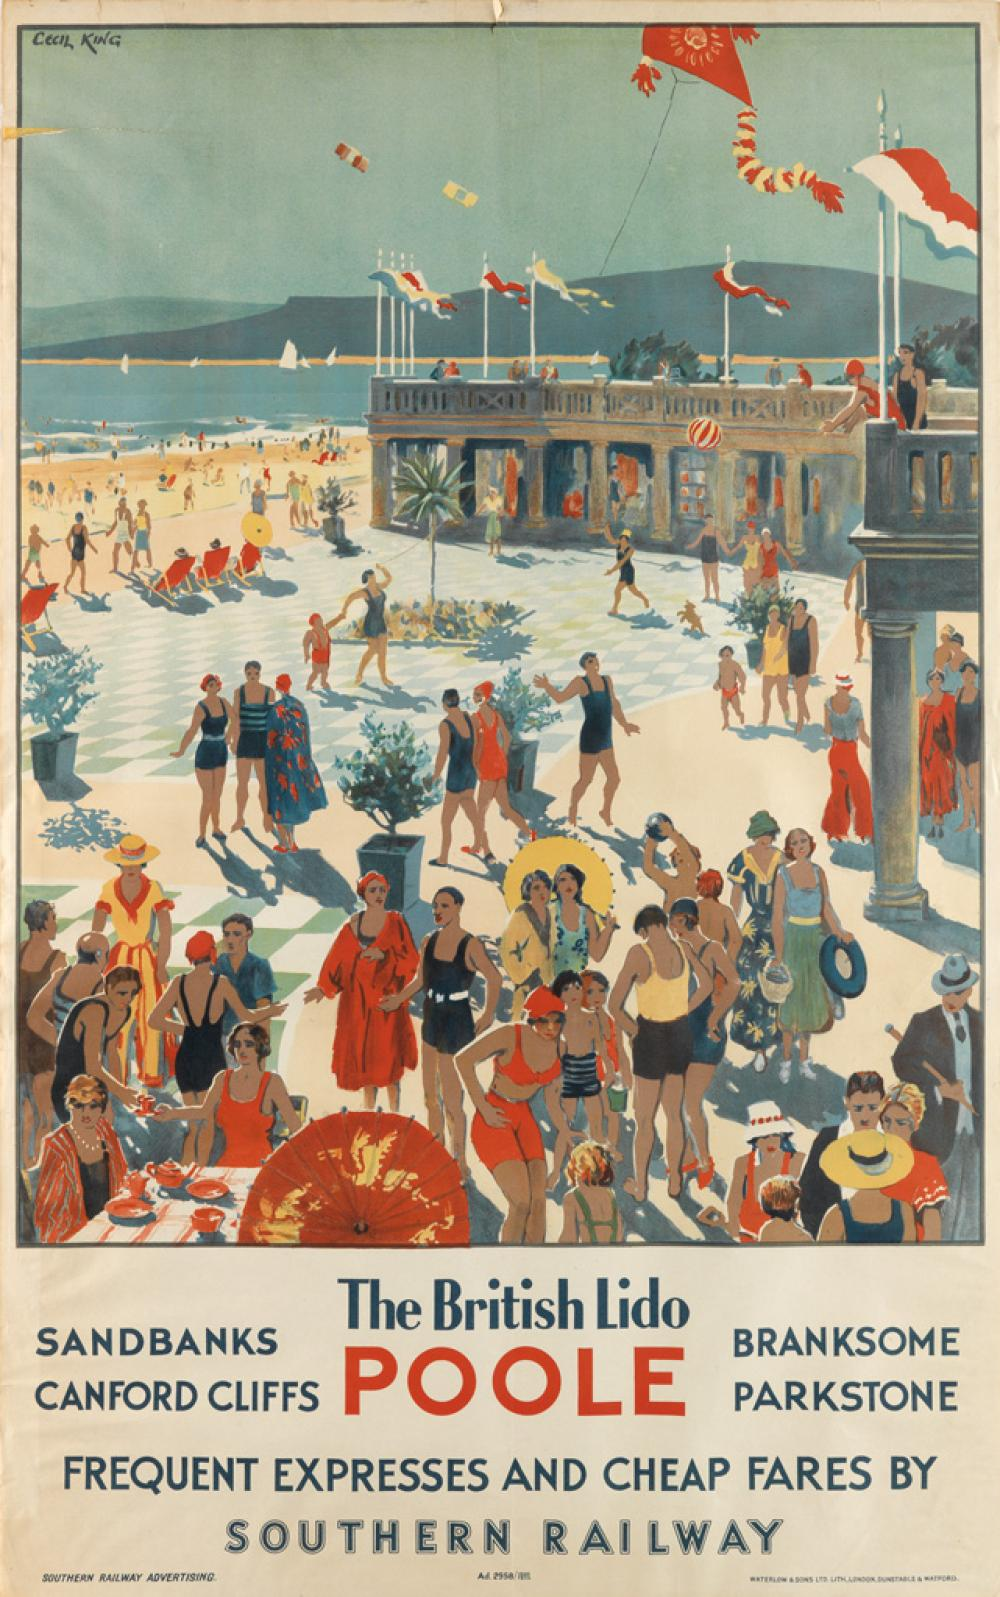 CECIL KING (1881-1942). POOLE / THE BRITISH LIDO / SOUTHERN RAILWAY. 1935. 39x24 inches, 100x63 cm. Waterlow & Sons Ltd., London.